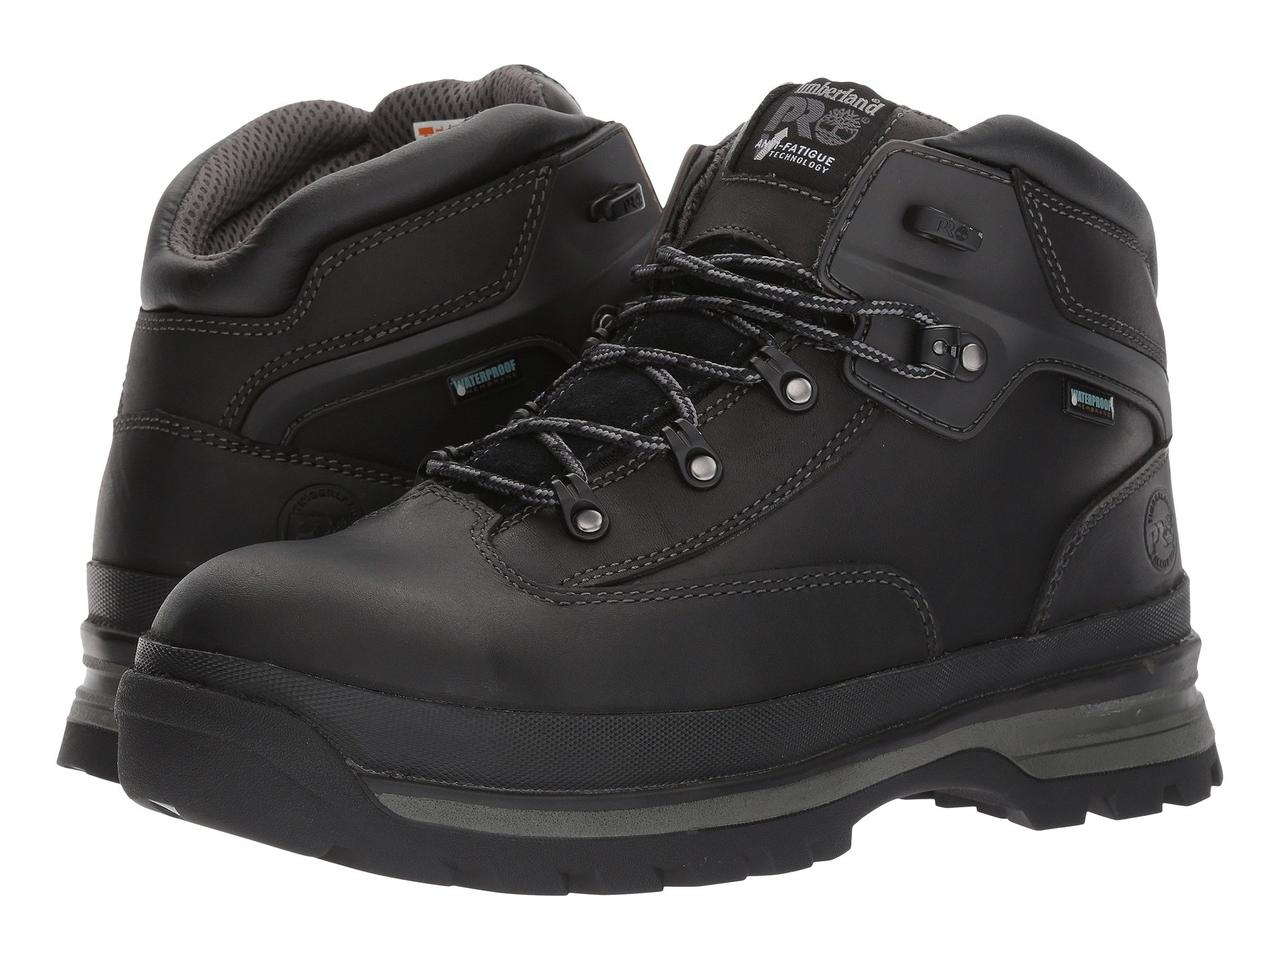 Ботинки Сапоги (Оригинал) Timberland PRO Euro Hiker Alloy Safety Toe  Waterproof Black Full ab4328d832f